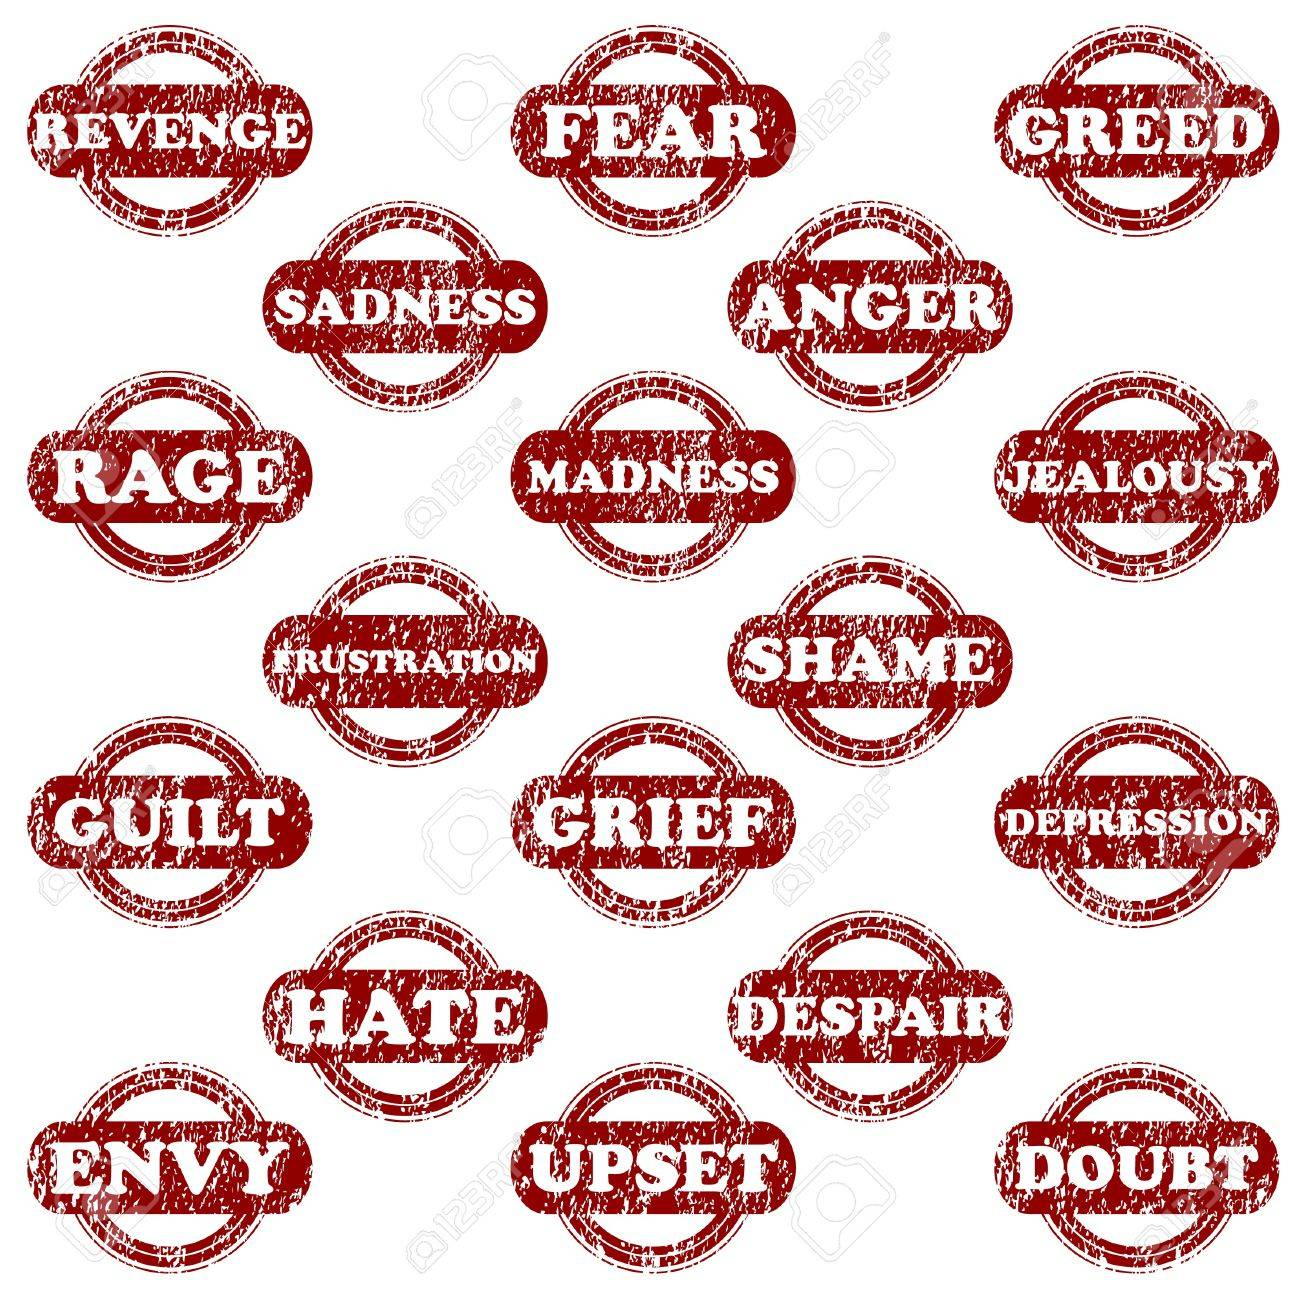 Set of rubber stamps with negative emotions Stock Vector - 14298188